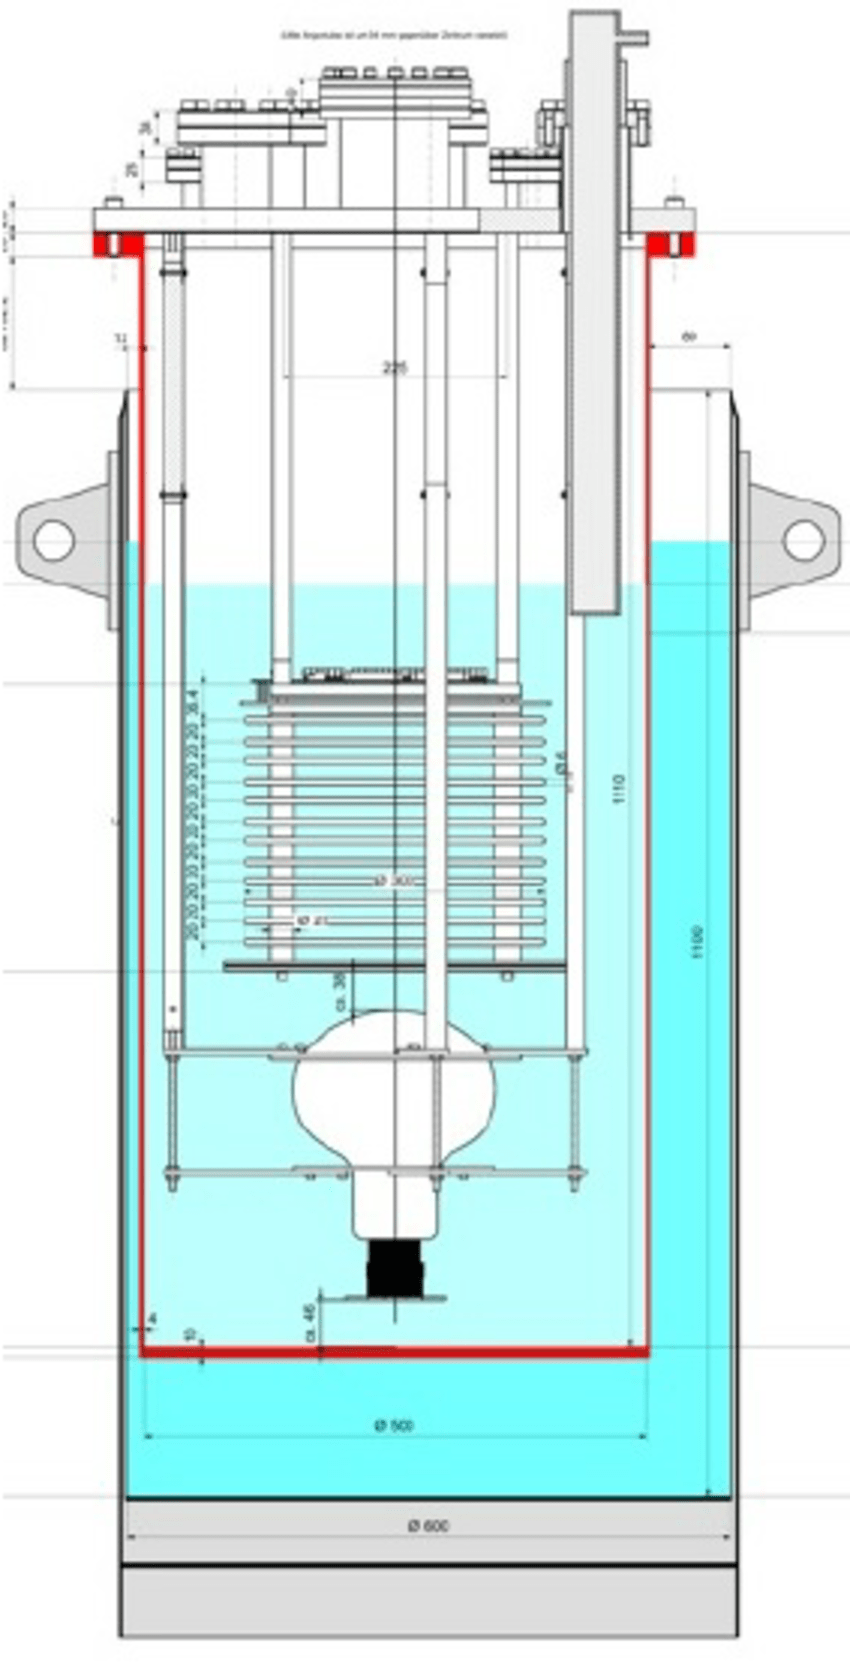 hight resolution of schematic drawing of the detector set up the tpc mounted with the drift coordinate vertically the pmt and the relative supports are housed in a